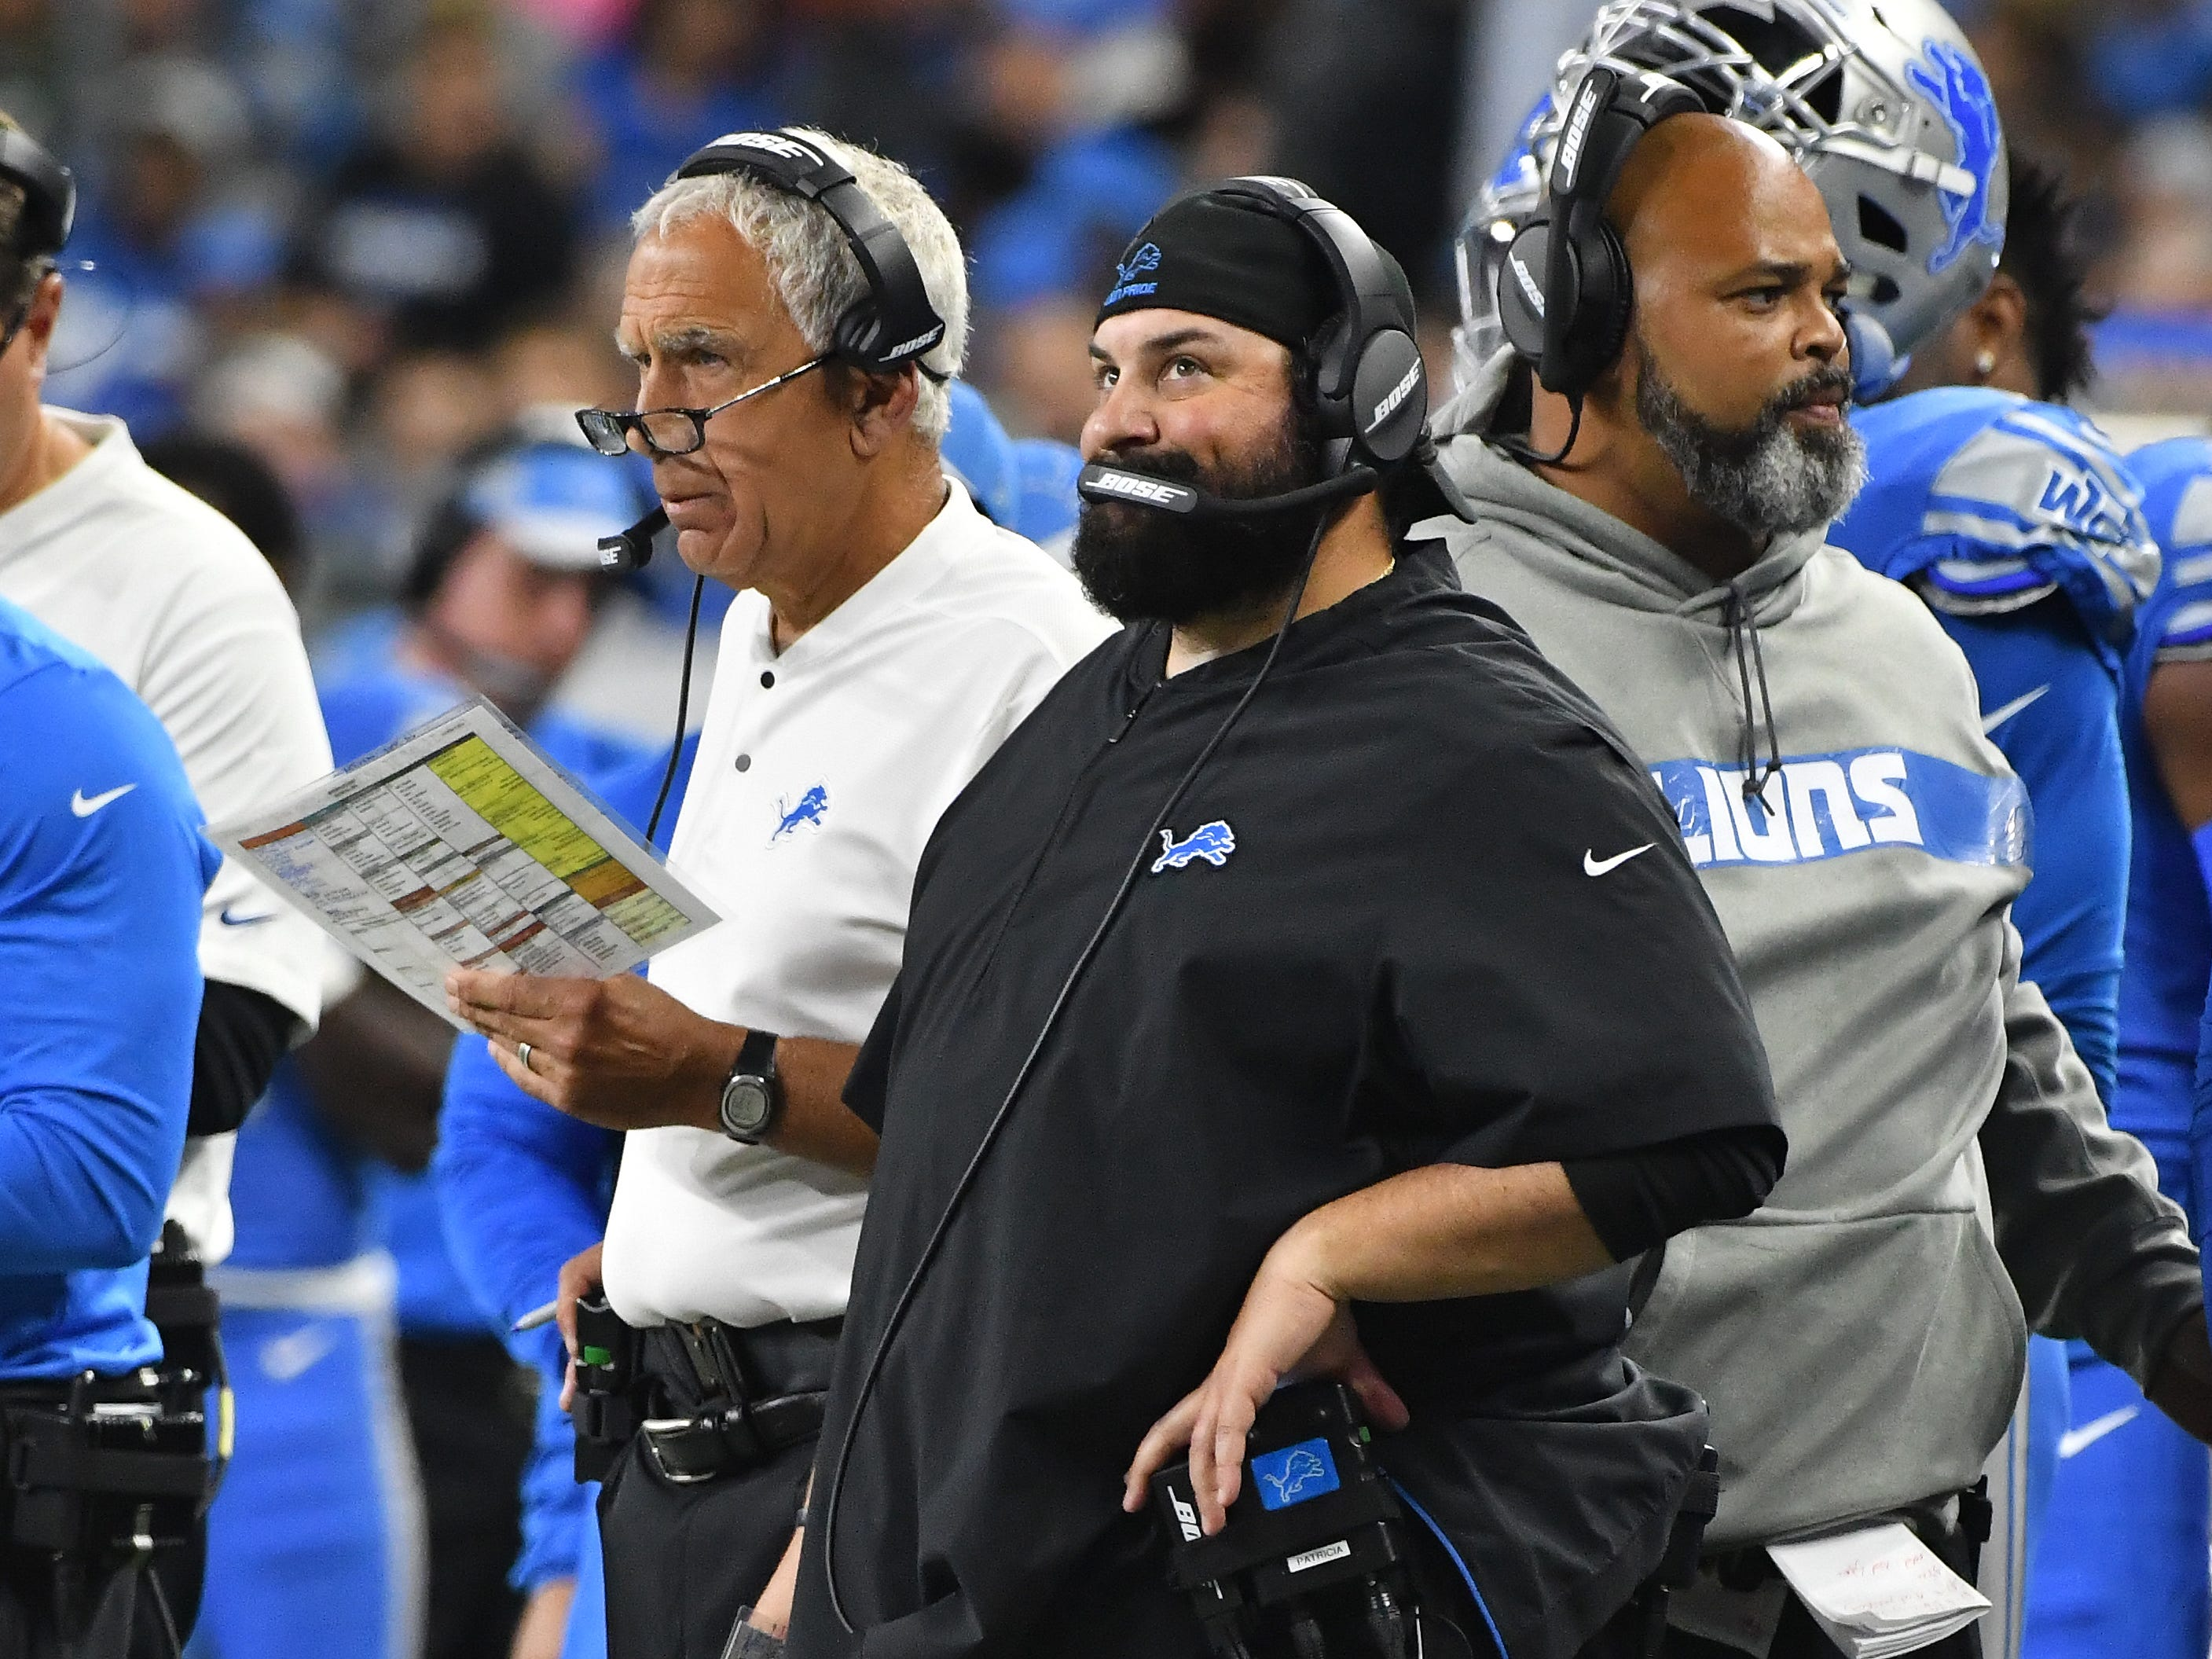 Lions defensive coordinator Paul Pasqualoni and Lions head coach Matt Patricia watch the game from the sidelines in the first quarter.